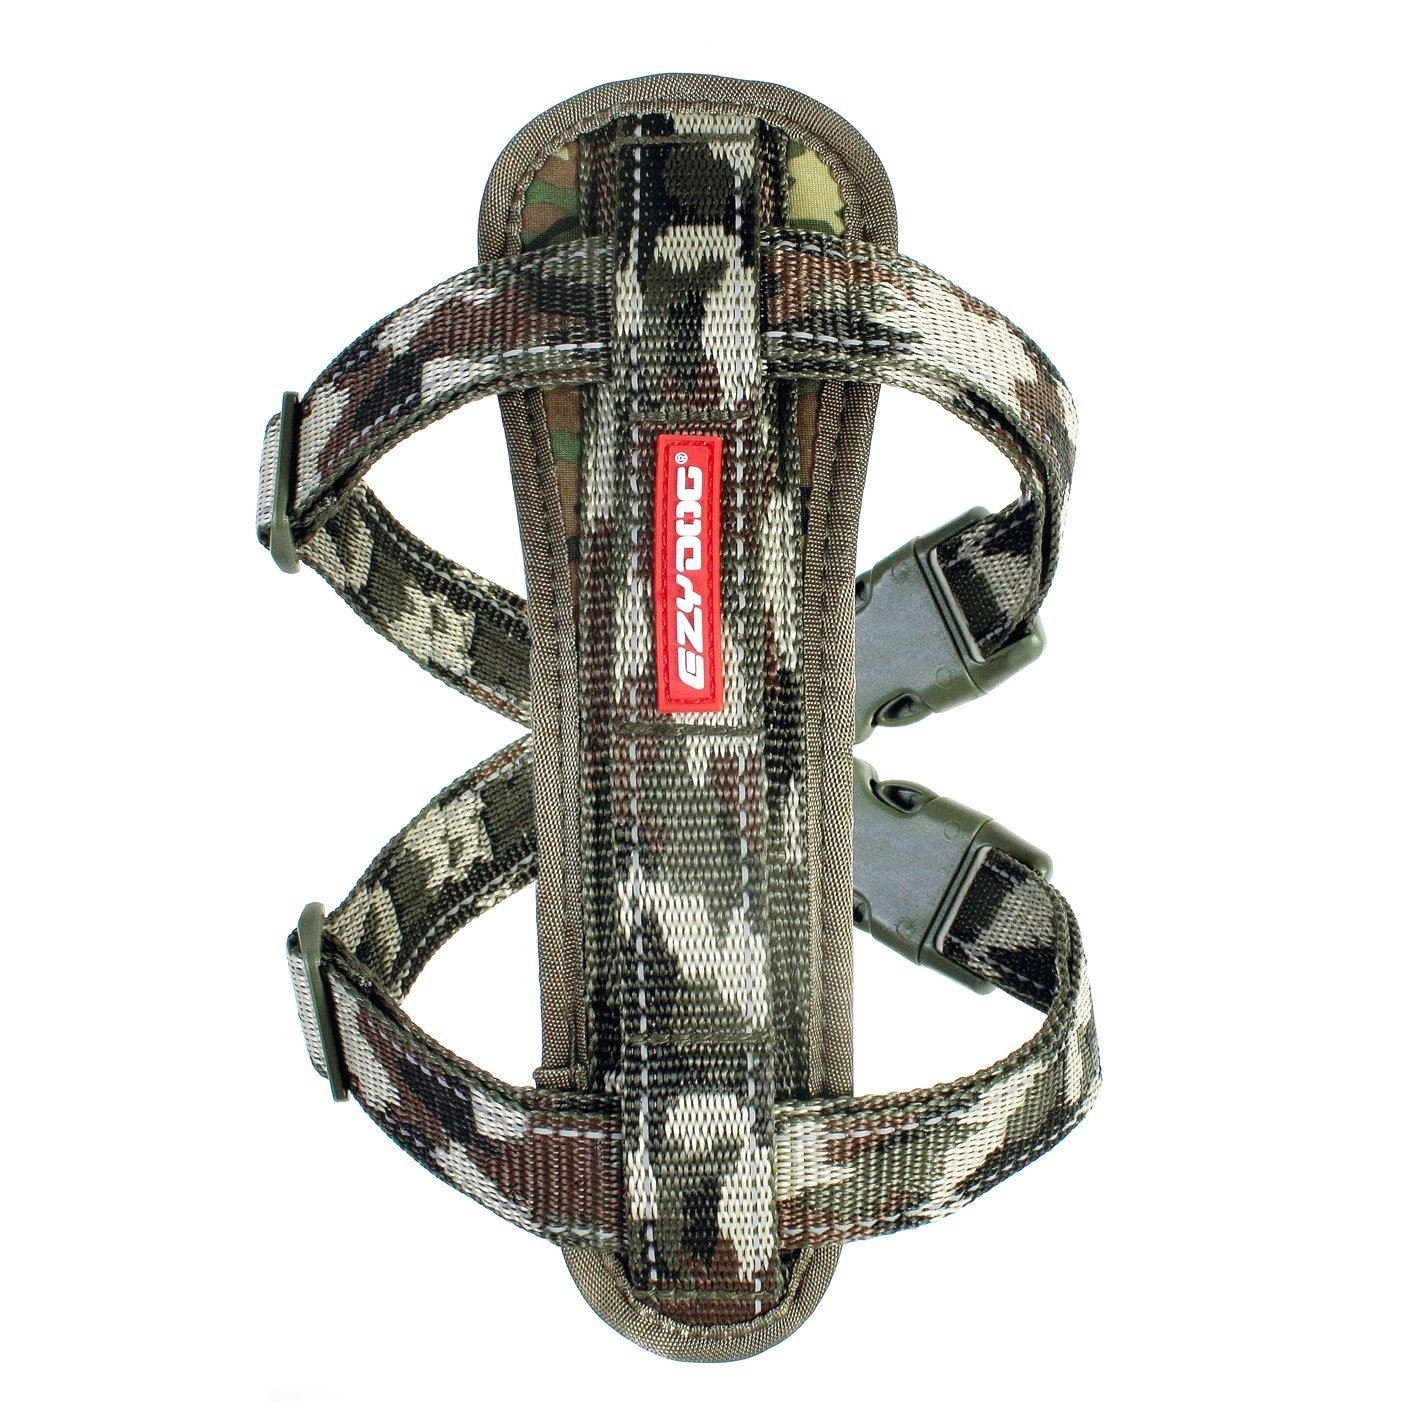 EzyDog Chest Plate Dog Harness & Car Restraint Top Quality Reflective Green Camo Small